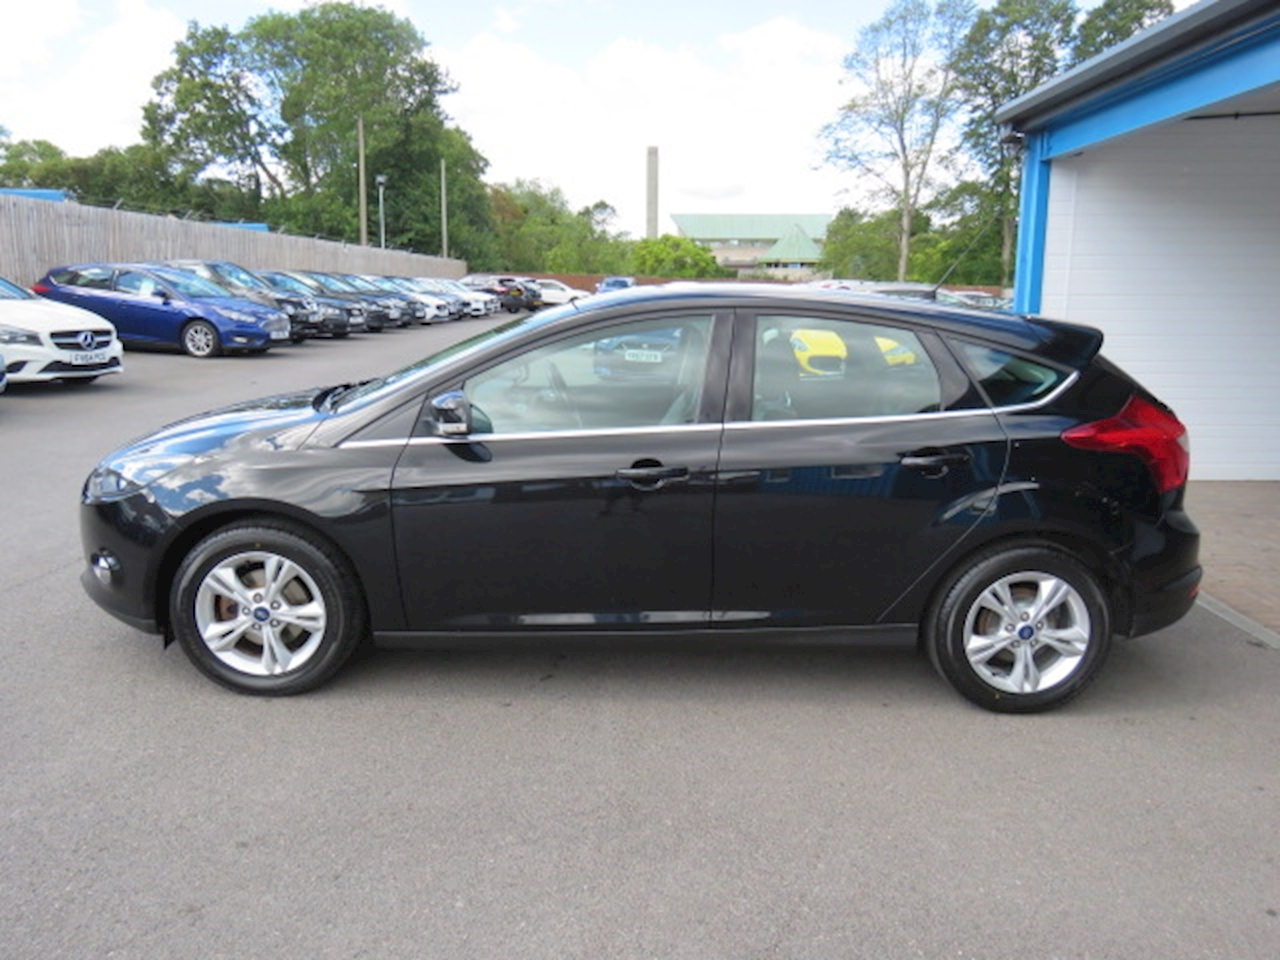 Ford Focus Zetec 1.6 5dr Hatchback Manual Petrol